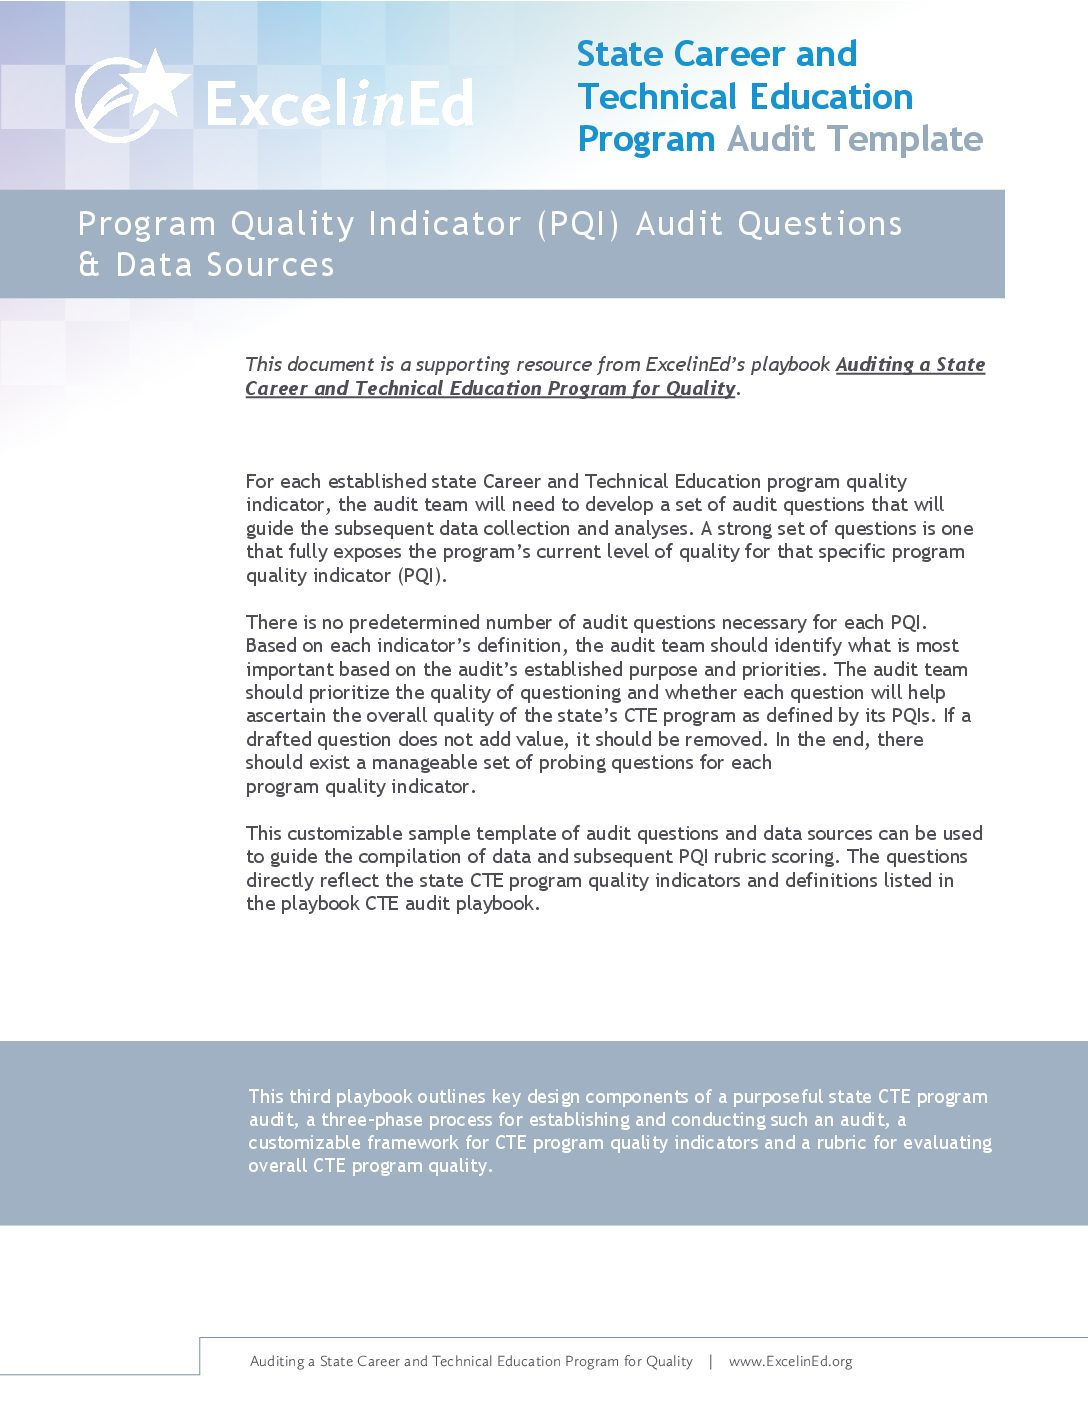 Playbook 3: CTE Audit Template &#8211; PQI Questions &#038; Data Sources>									 									</a> 									<a href=